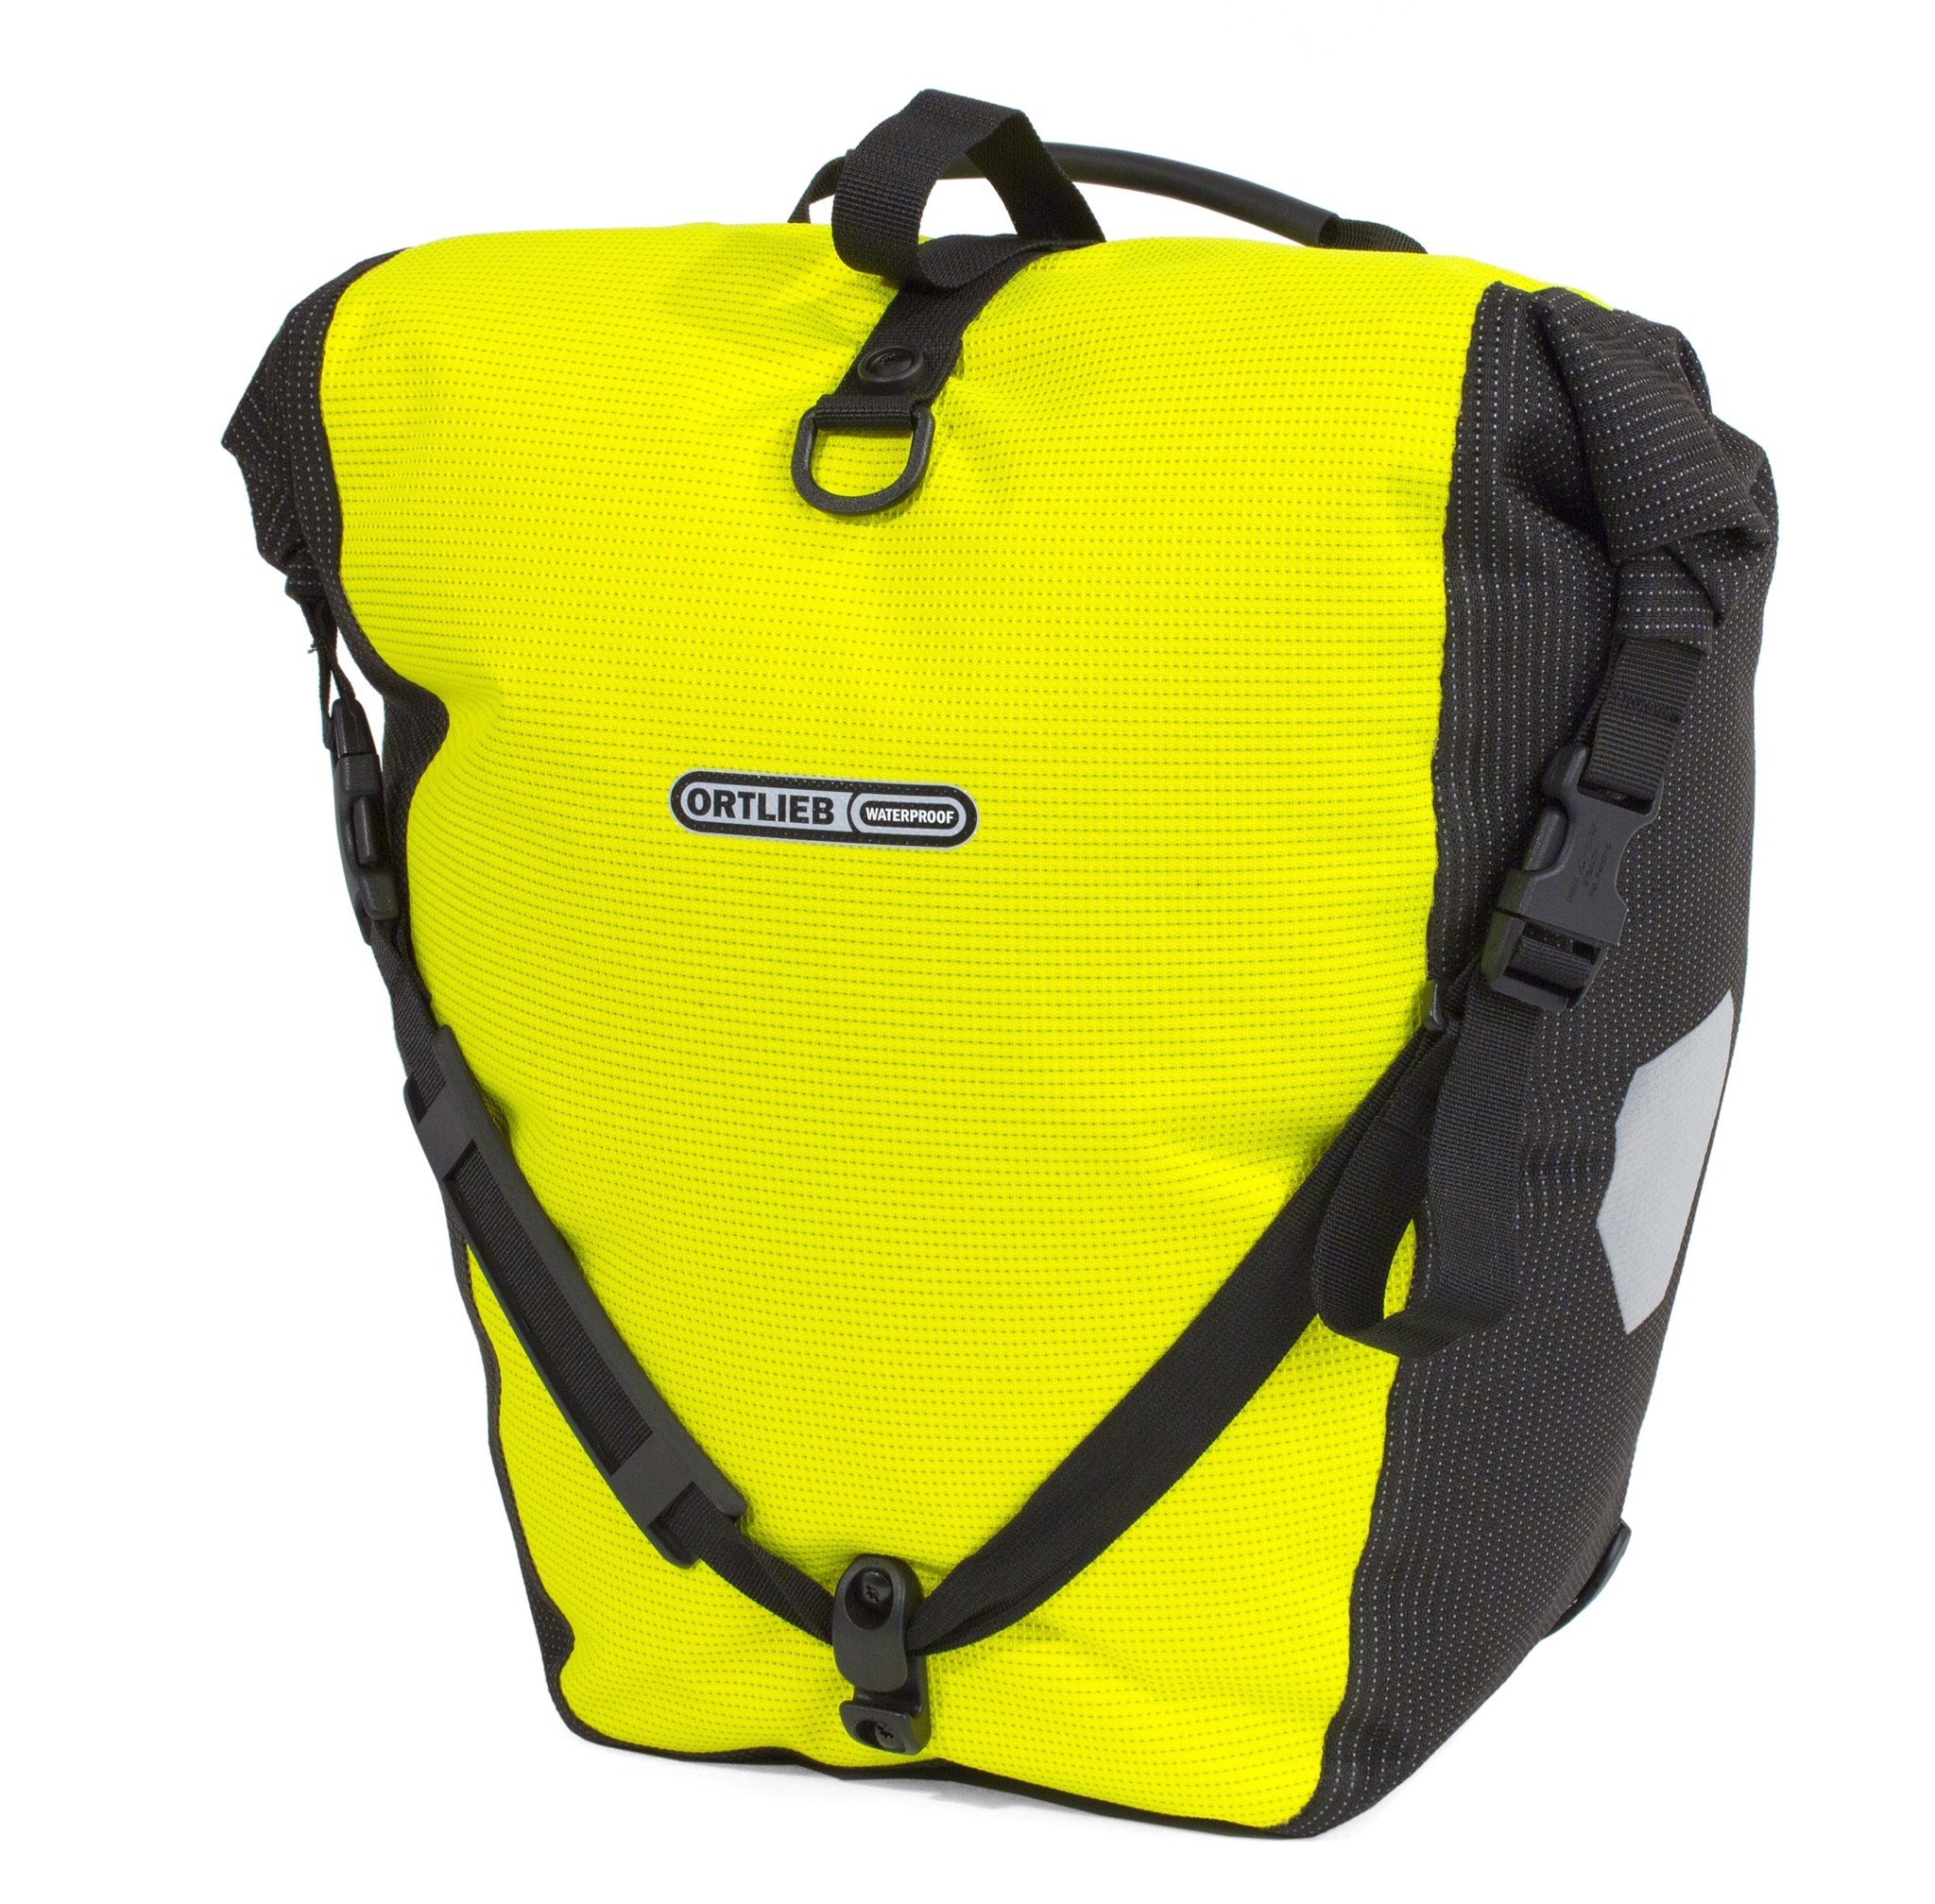 Ortlieb high visibility bike panniers